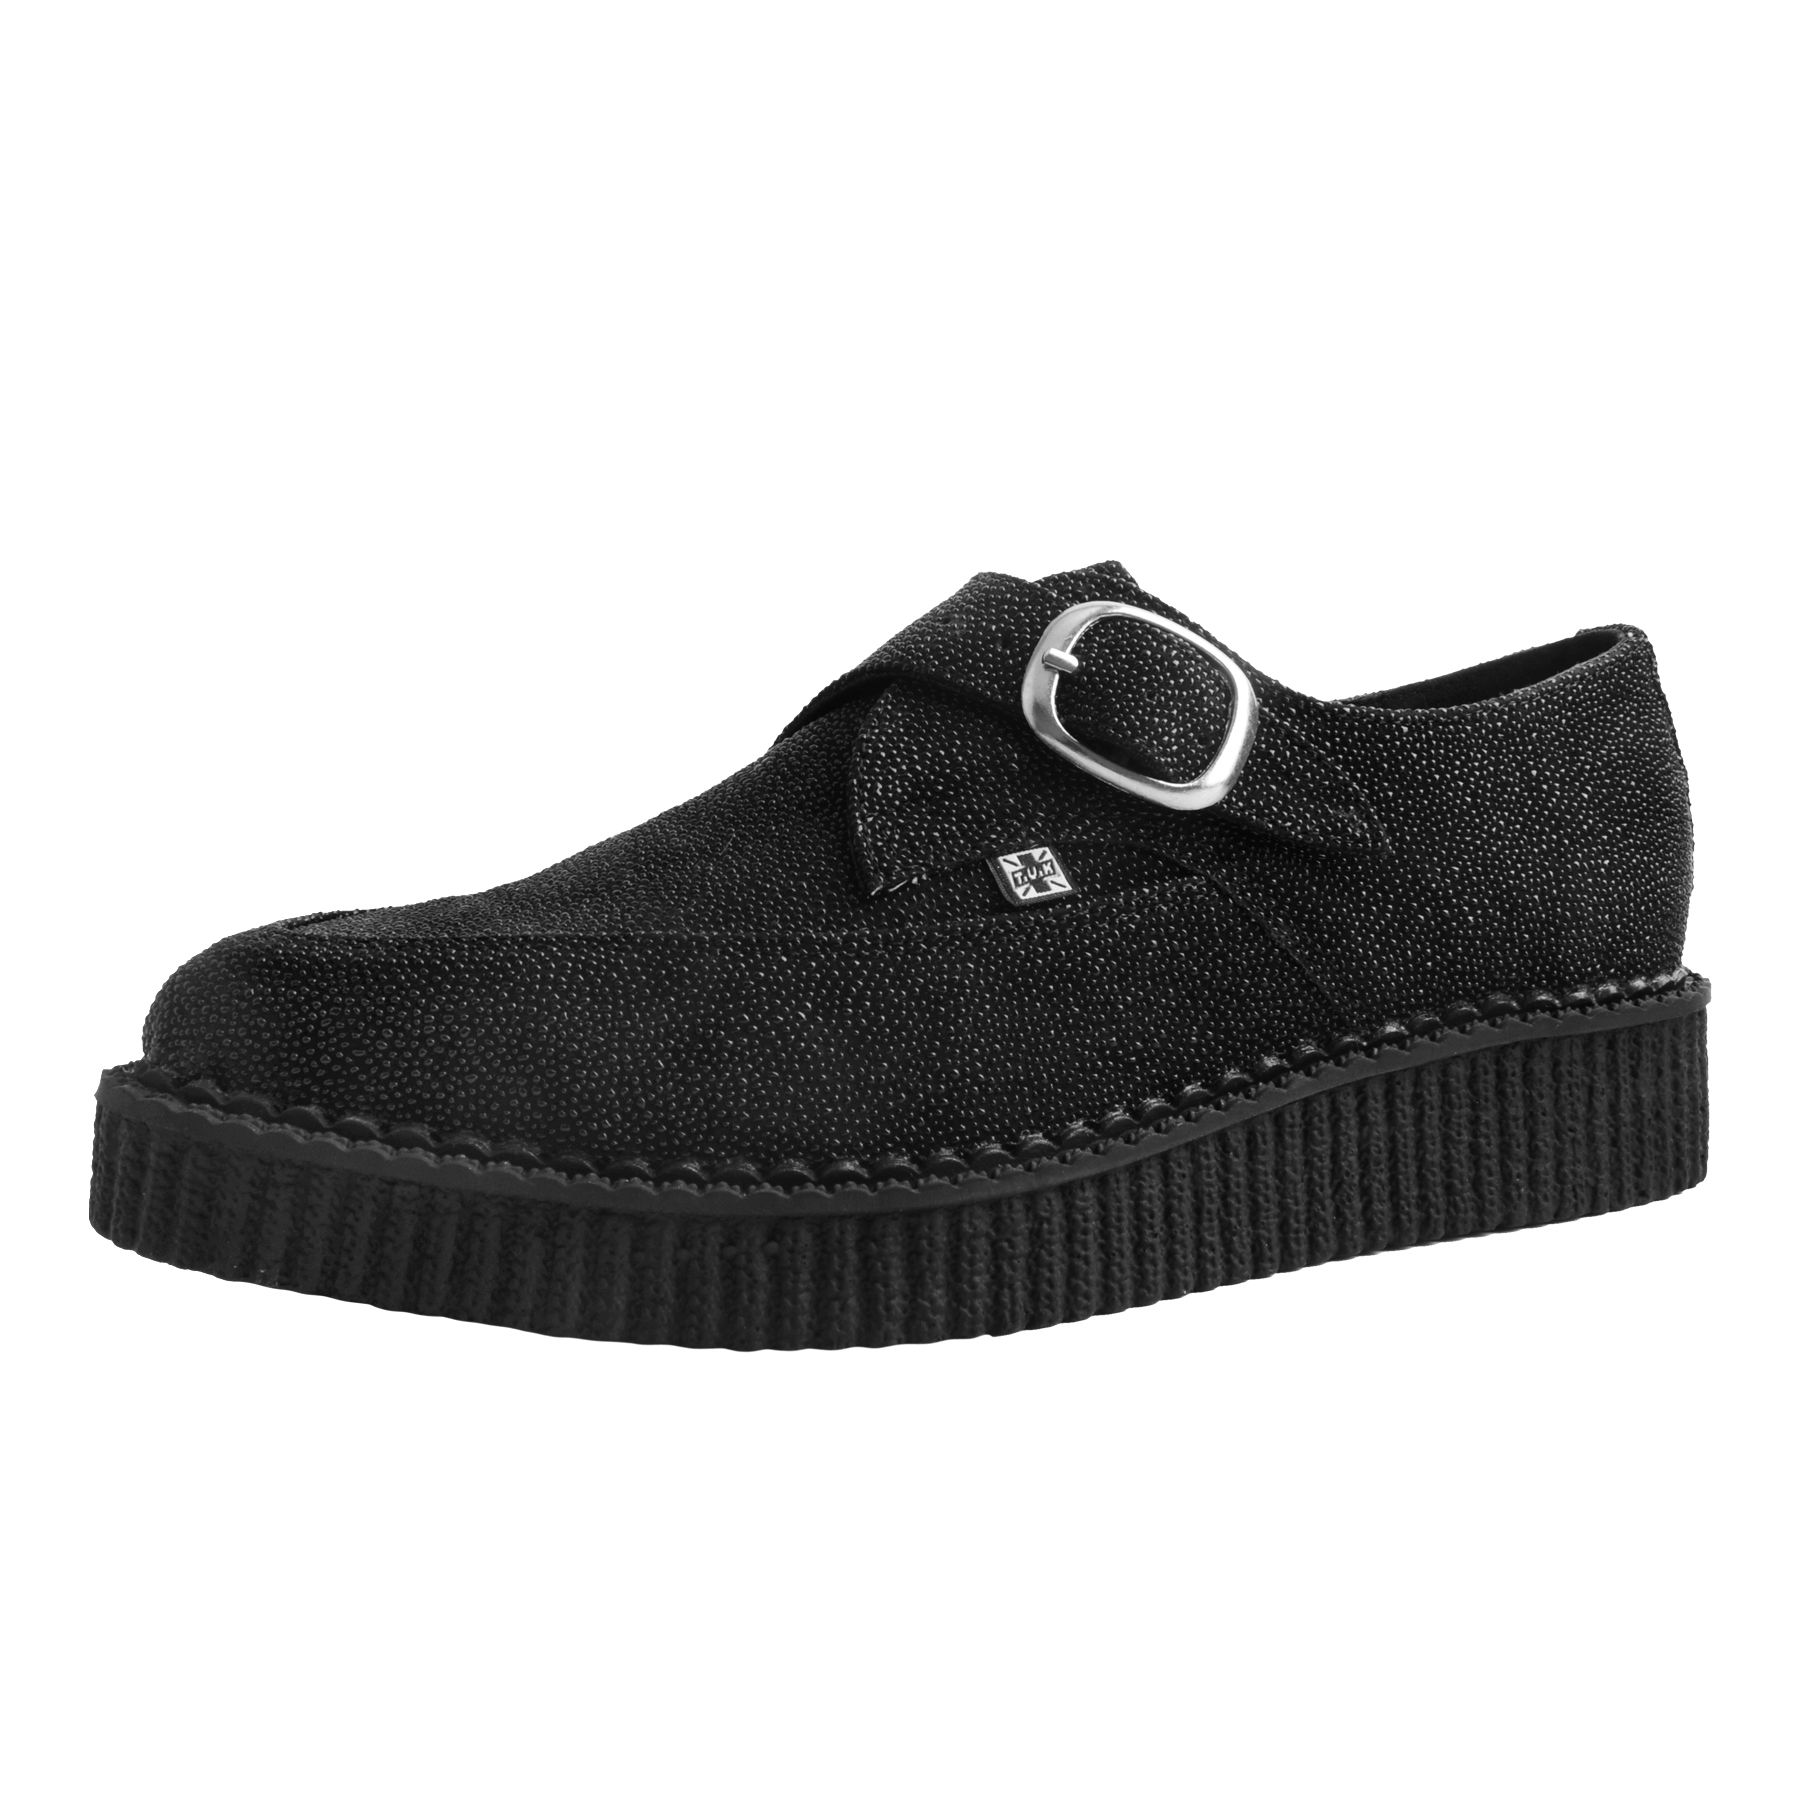 T.U.K. Shoes Black Stingray Leather Monk Buckle Pointed Creeper A2970